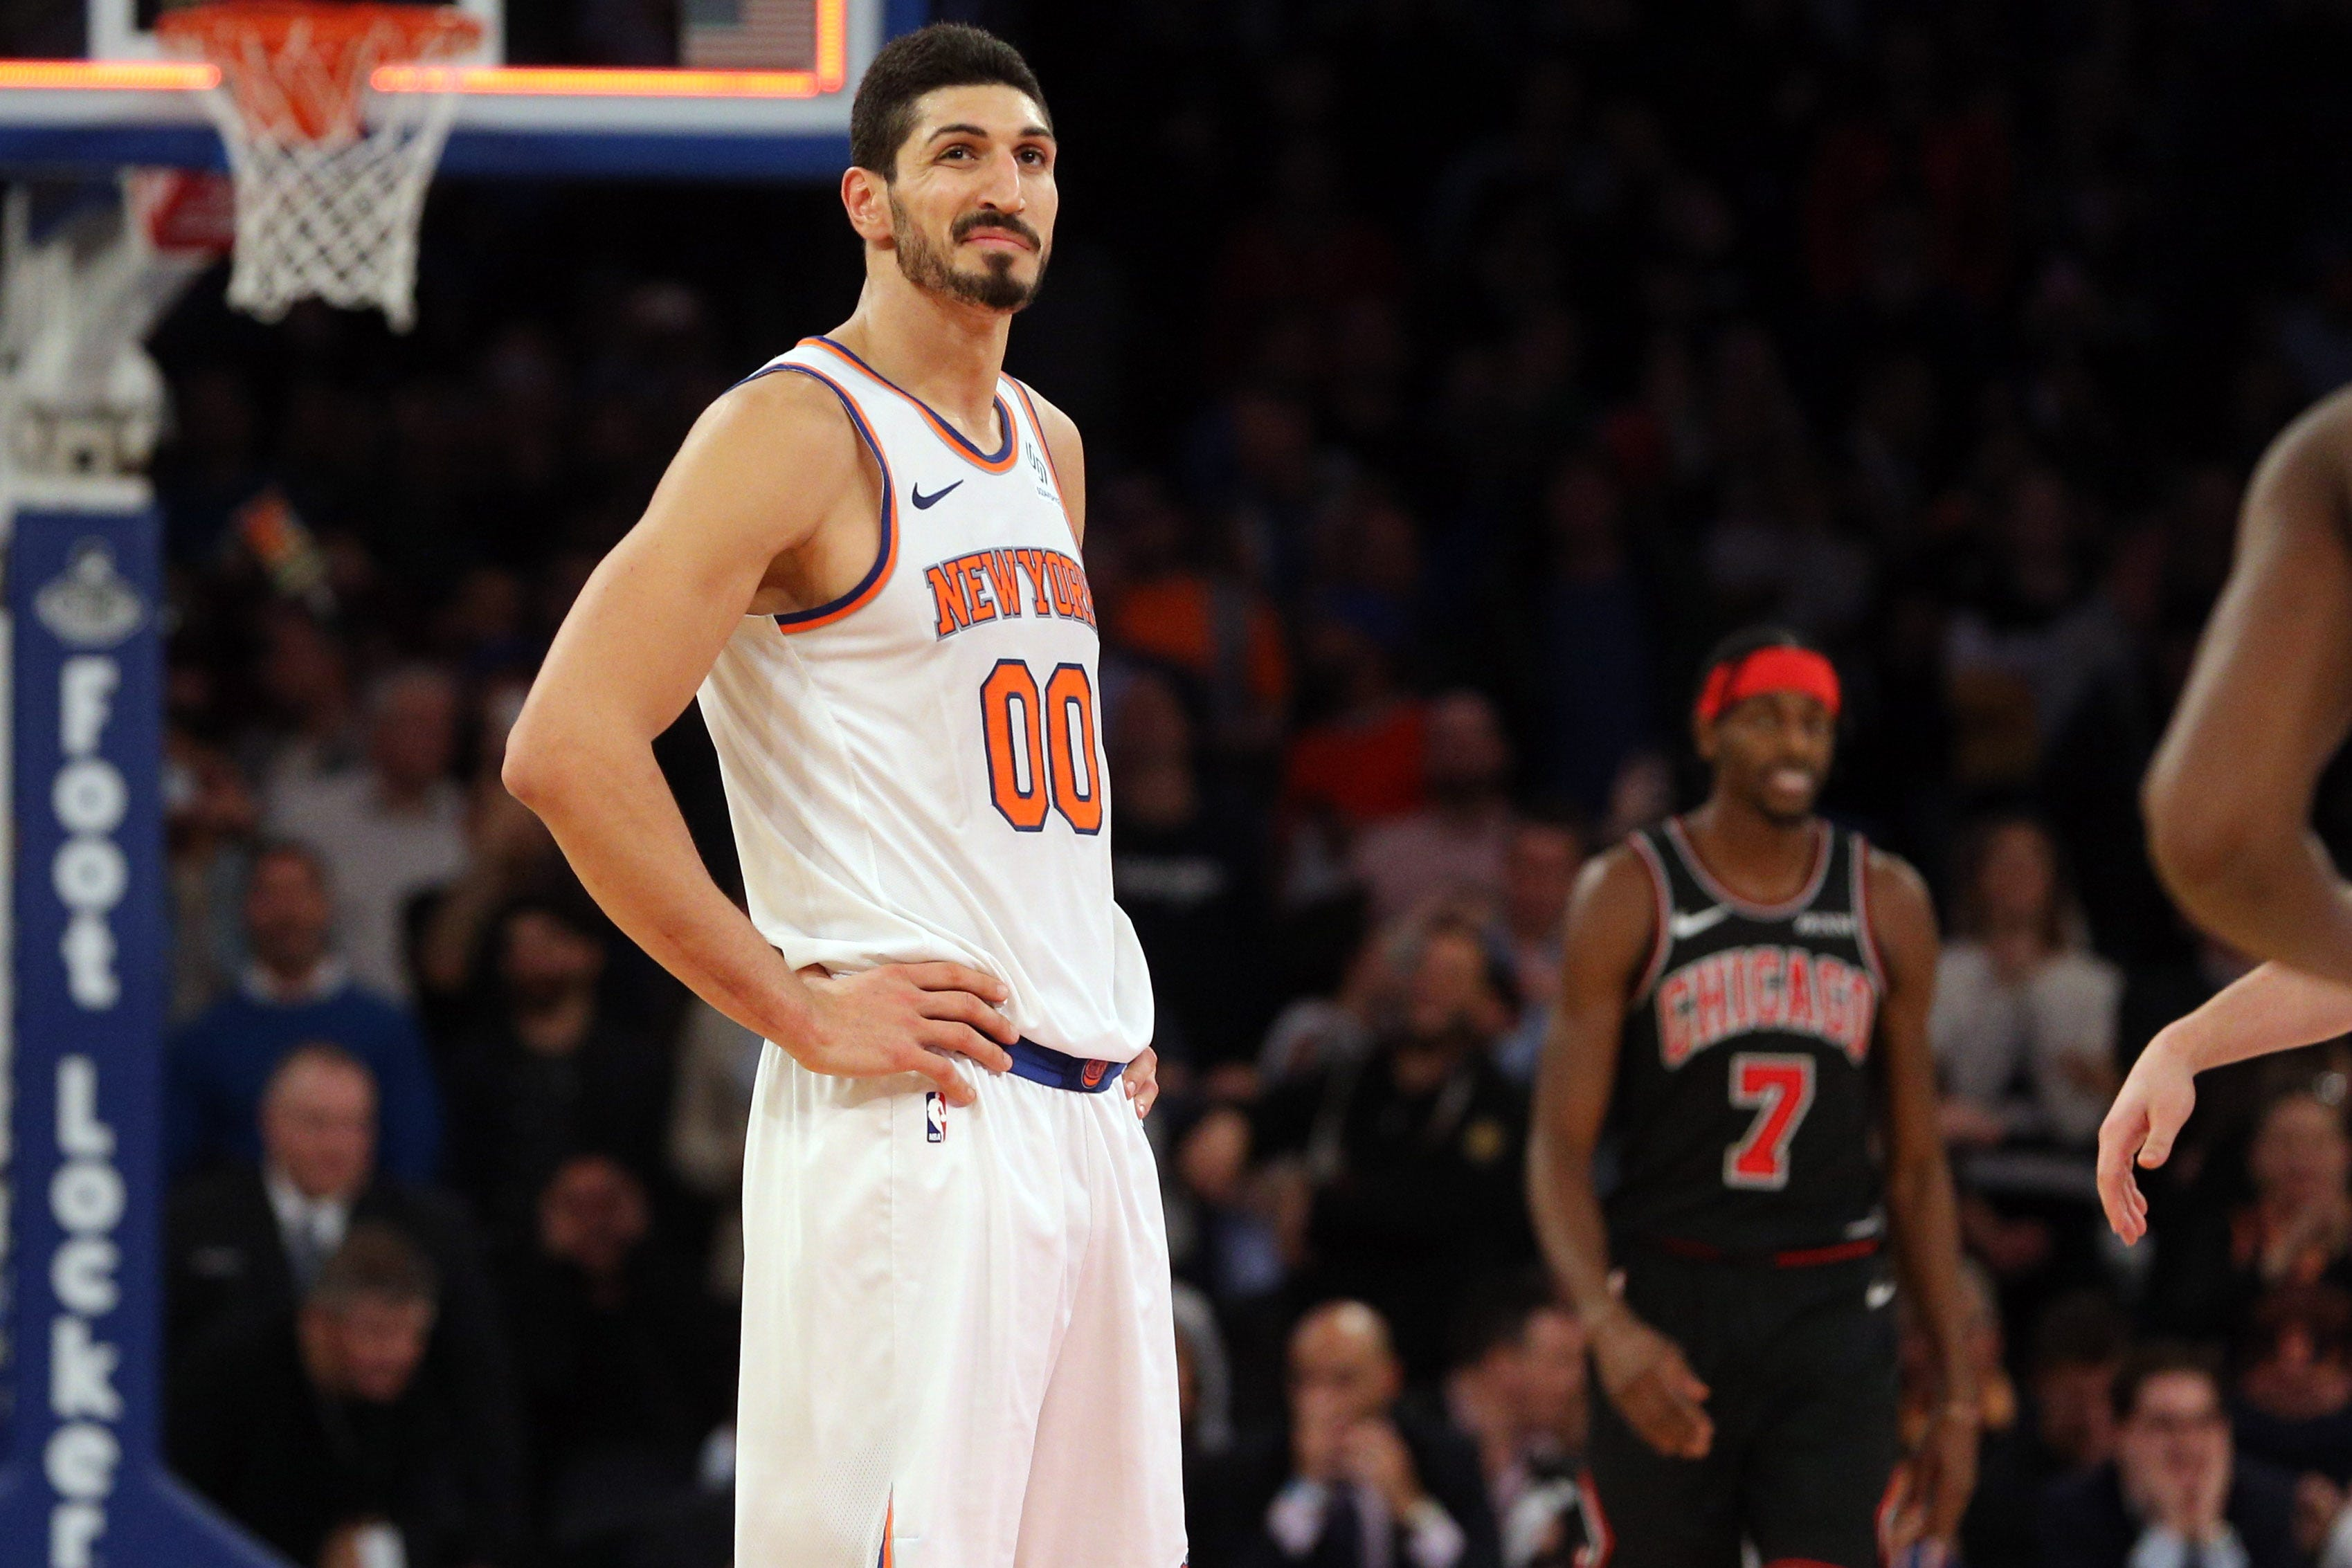 kanter vs  knicks feud  where do they go from here